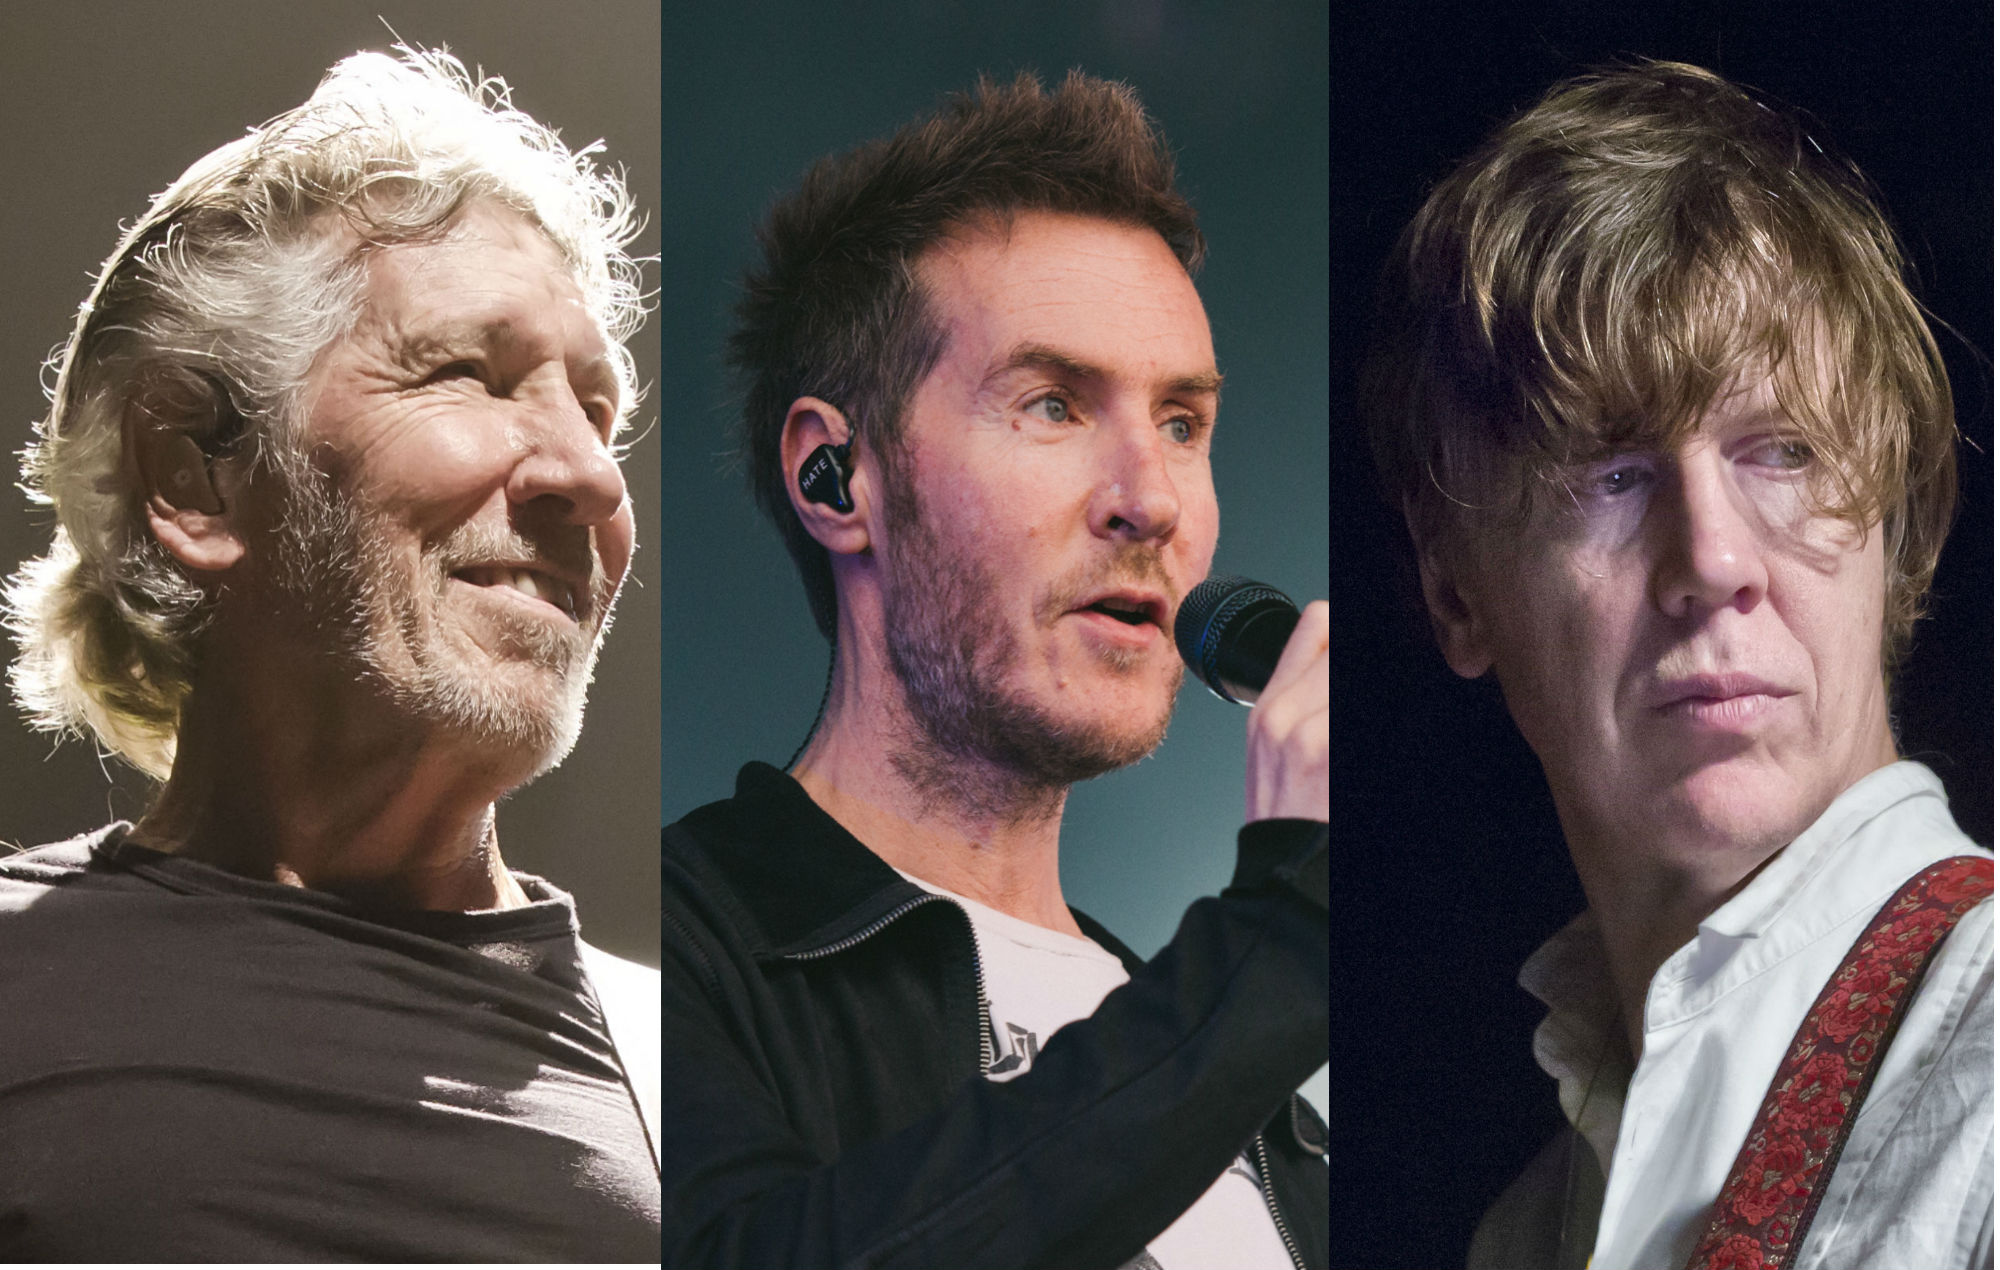 Exclusive: New letter supporting Jeremy Corbyn signed by Roger Waters, Robert Del Naja and more